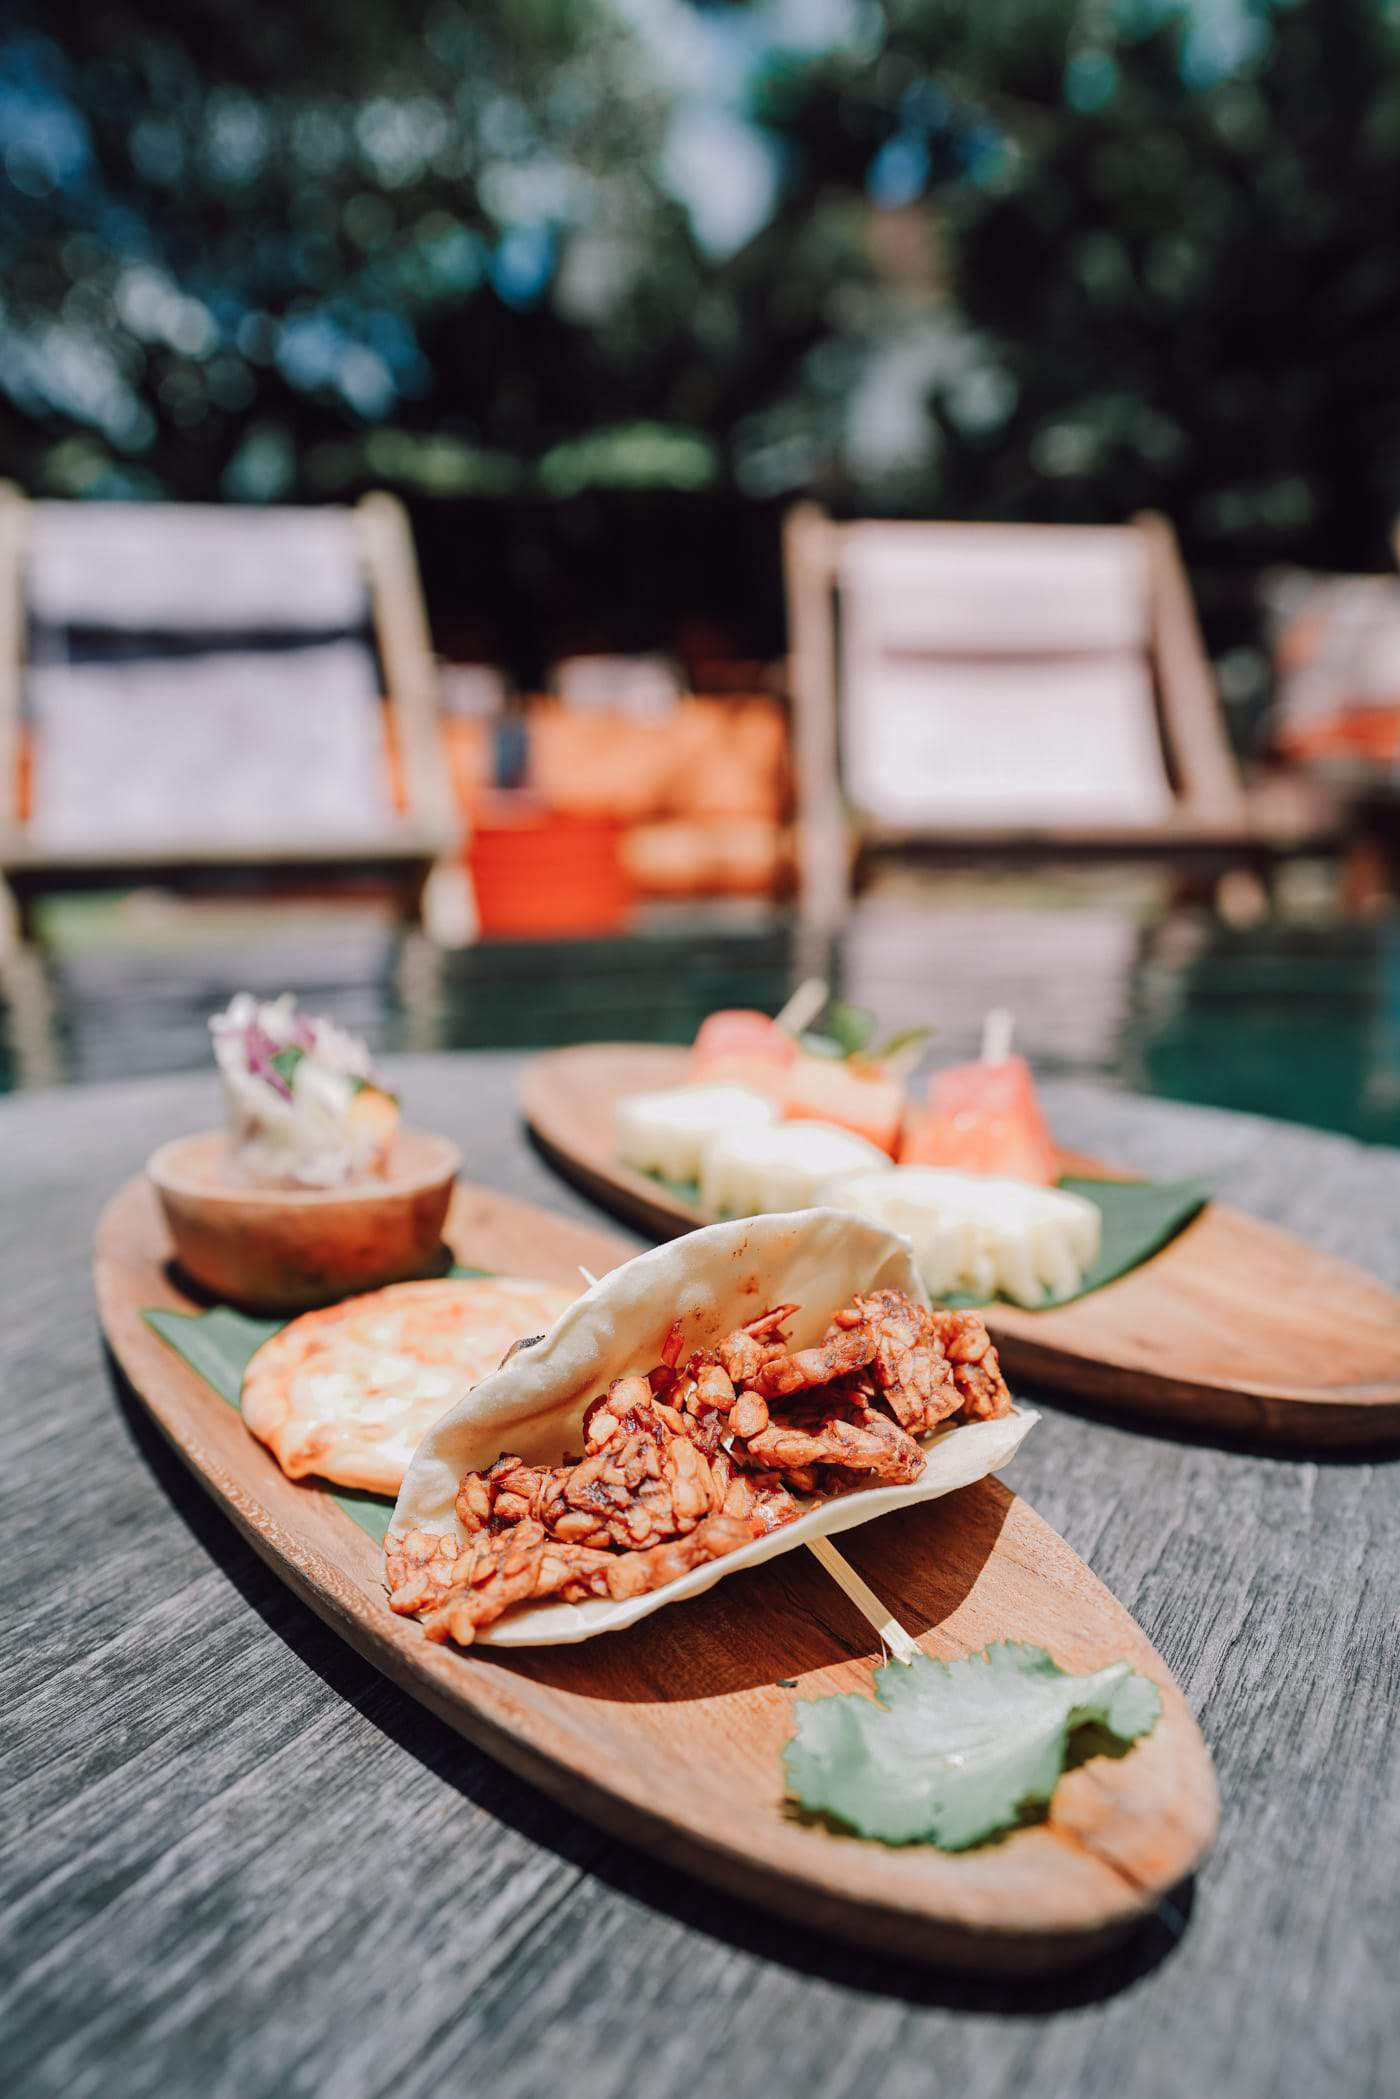 Looking for the best Bali beach clubs? We have you covered! Today, we're giving an honest review of 5 of Bali most notable beach clubs across the island. Including Folk Beach Club in Ubud